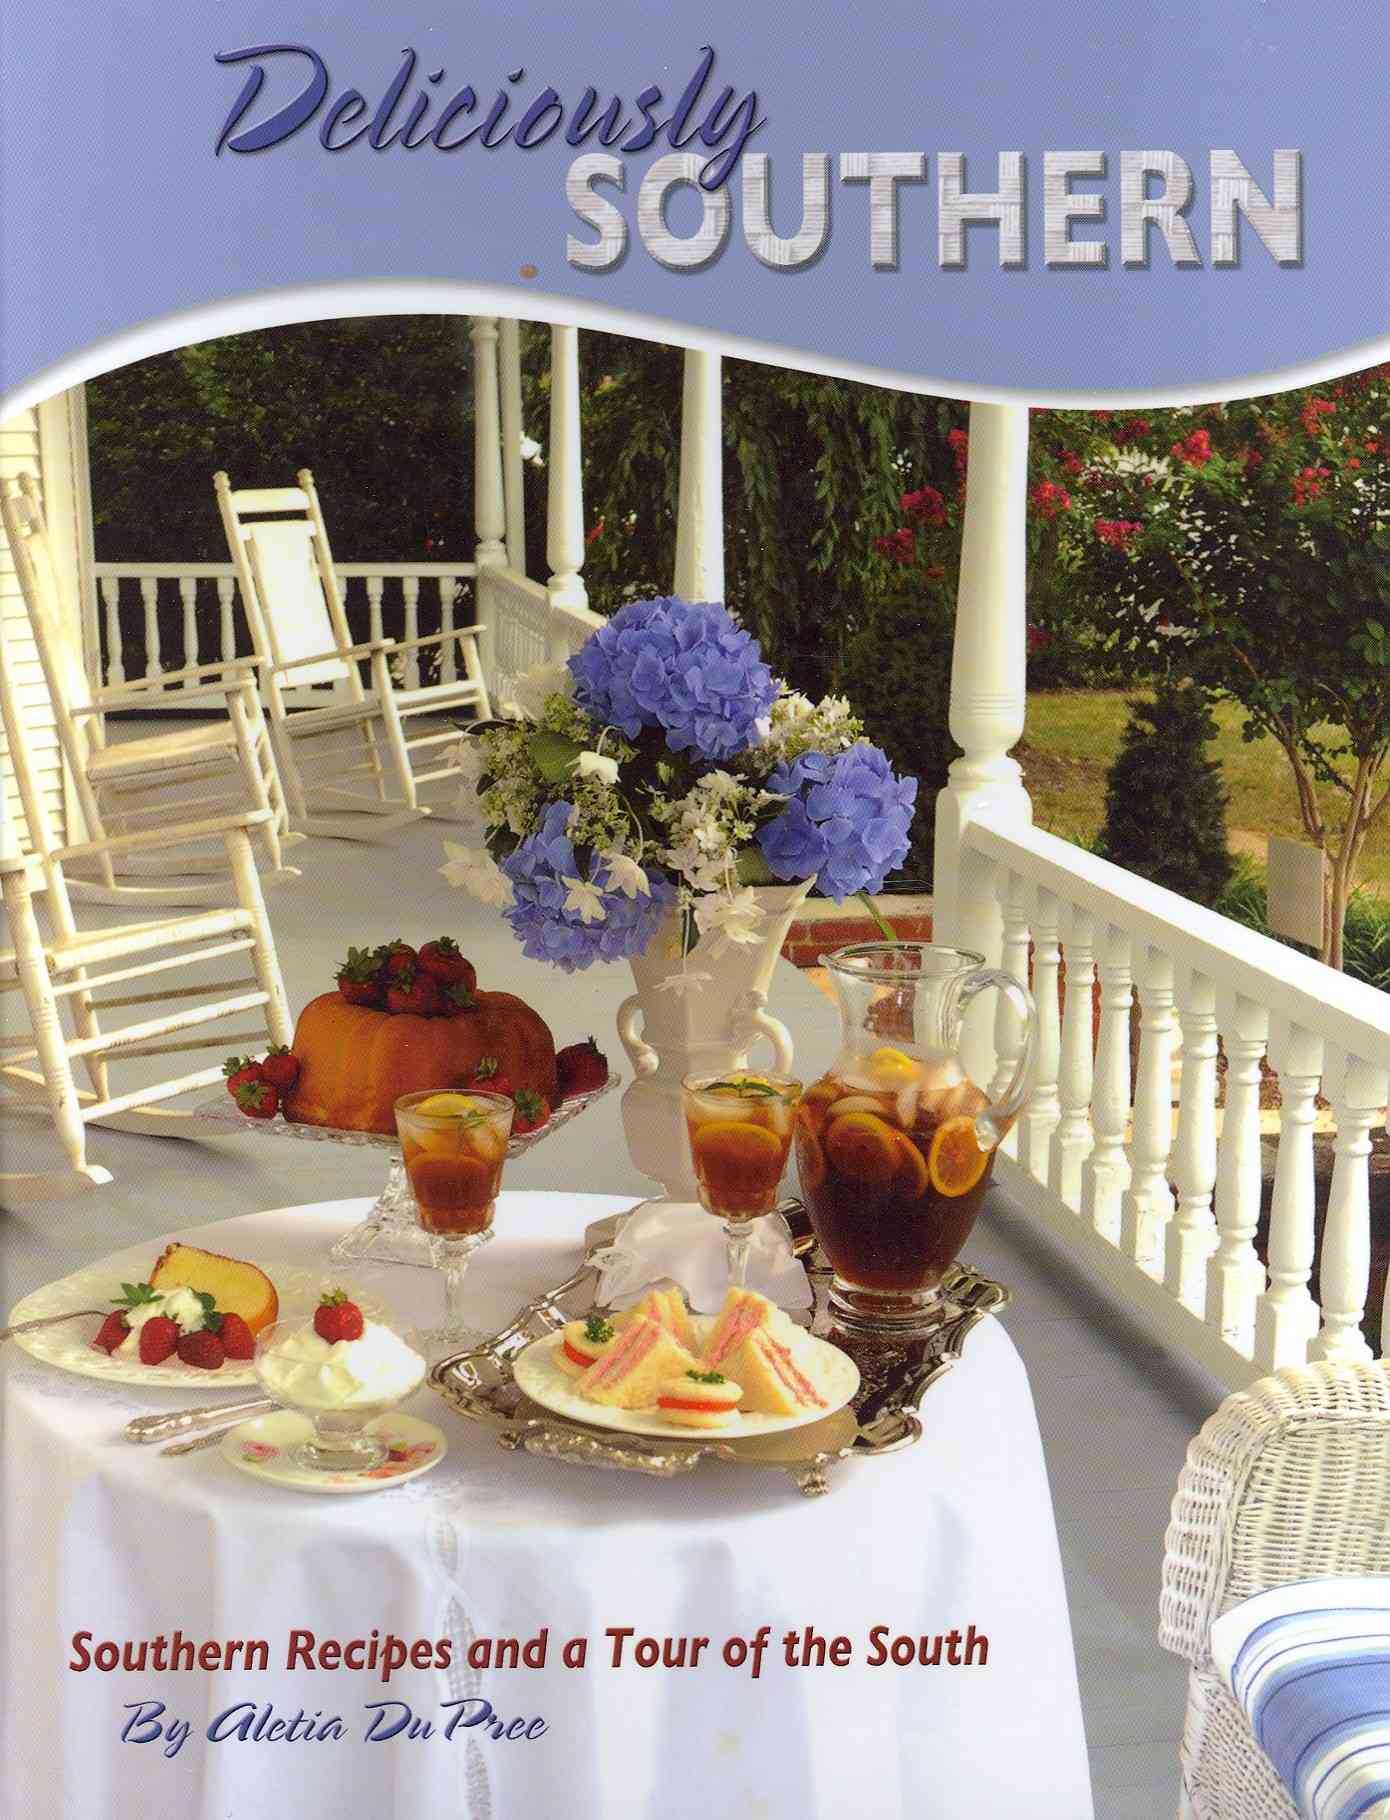 Deliciously Southern By Dupree, Aletia